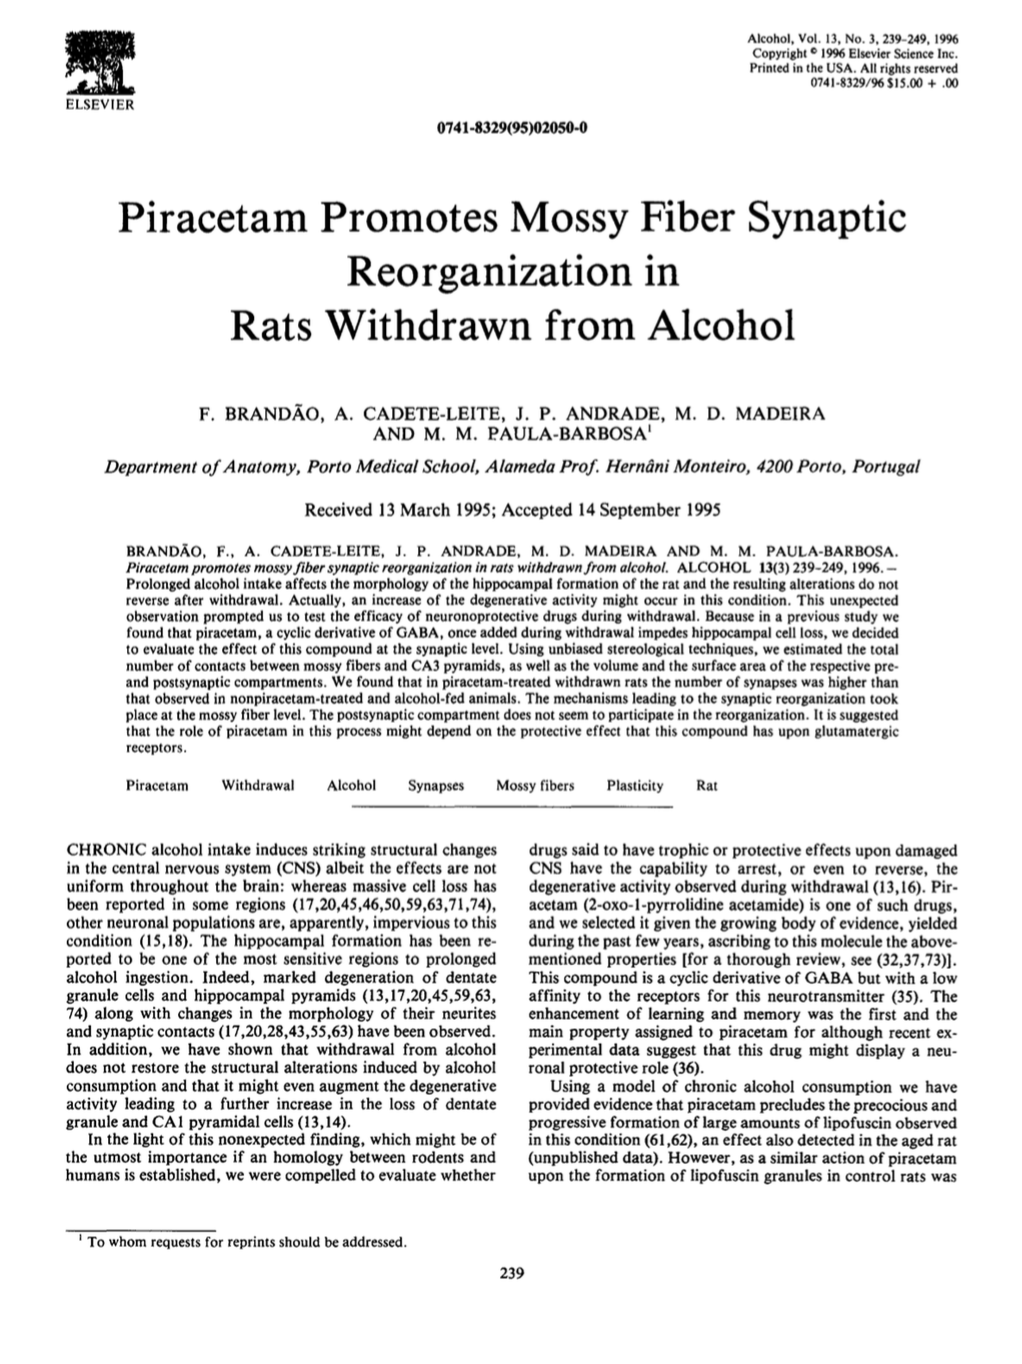 Piracetam Promotes Mossy Fiber Synaptic Reorganization in Rats Withdrawn from Alcohol